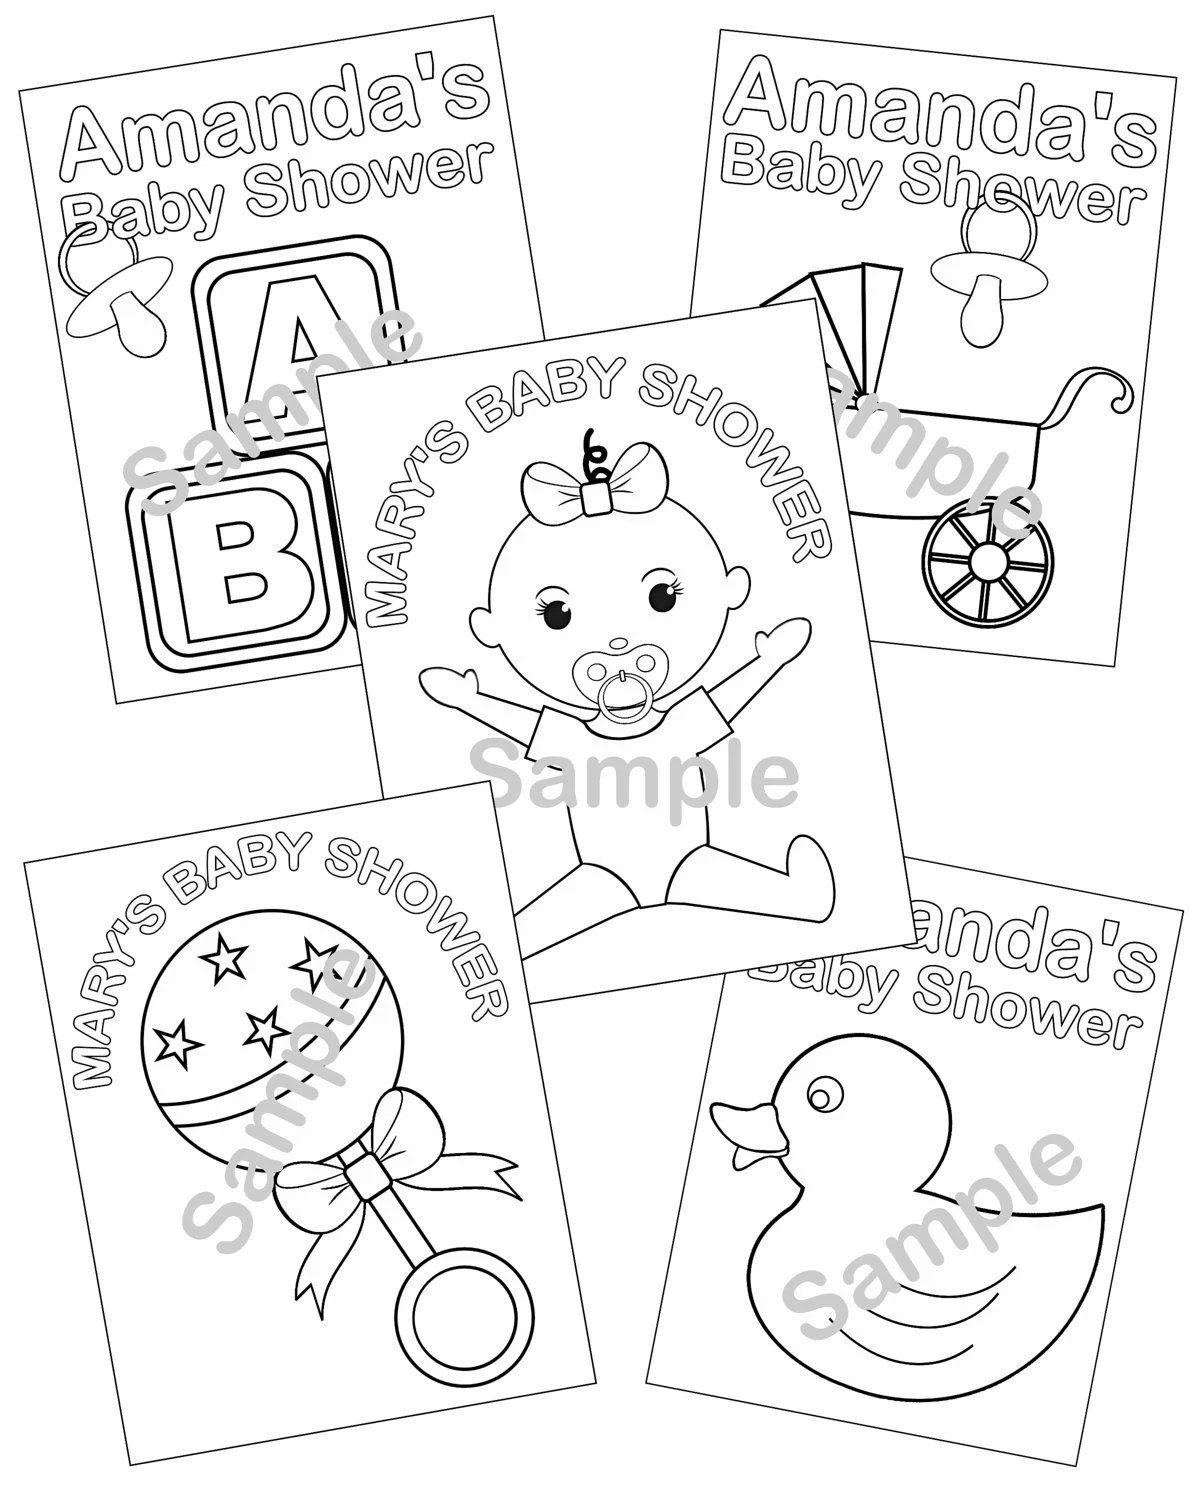 5 Personalized Printable Baby Shower Favor Childrens Kids